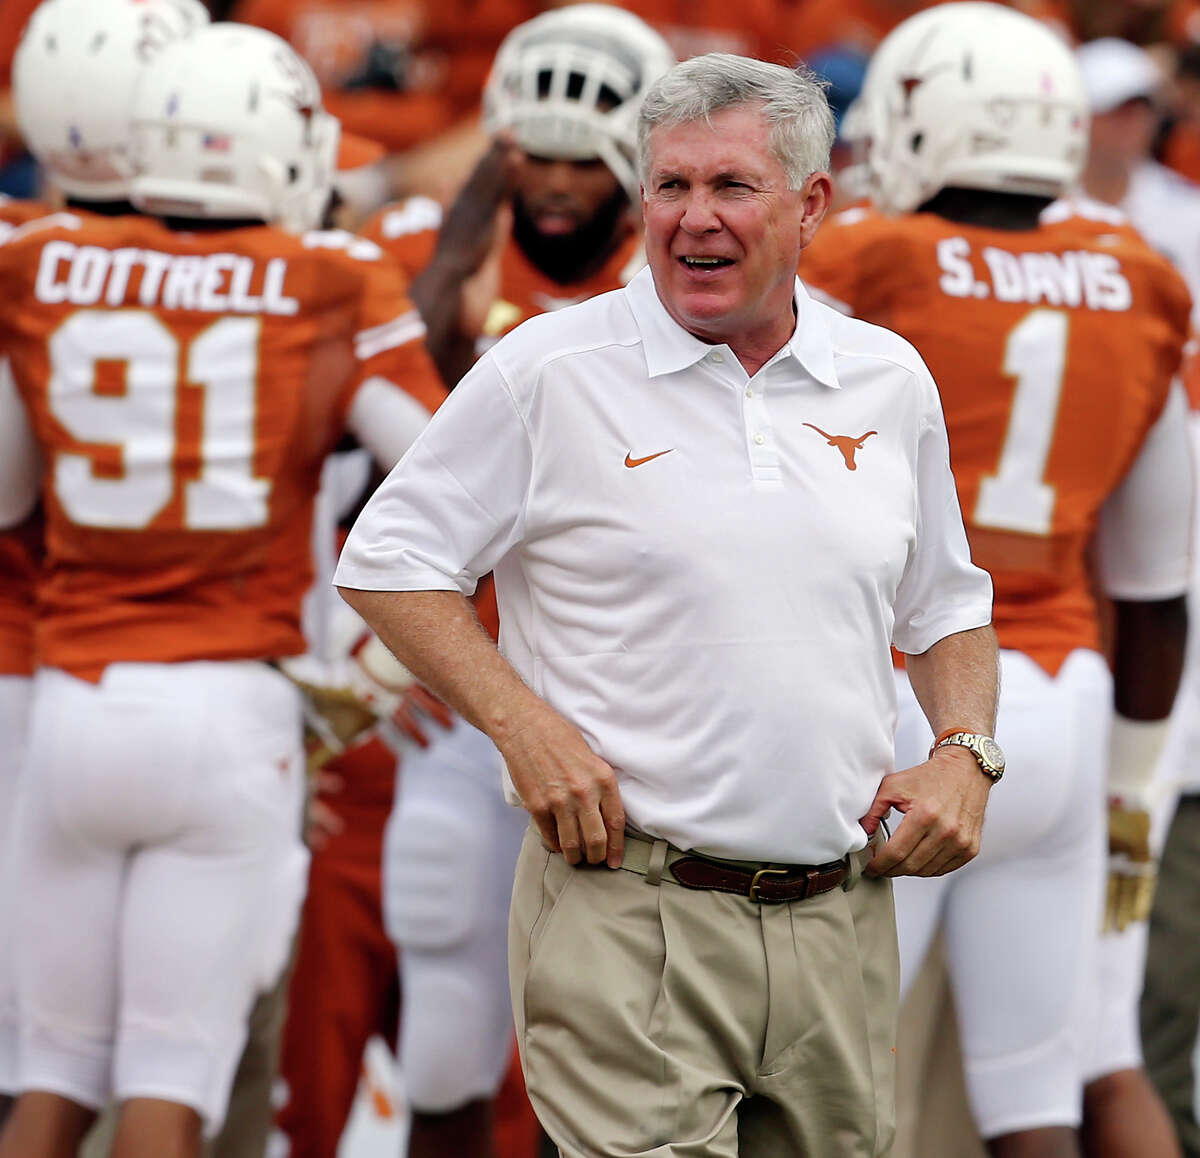 Texas Longhorns head coach Mack Brown watches the team before the Red River Rivalry against the Oklahoma Sooners held Saturday Oct. 12, 2013 at Cotton Bowl Stadium in Dallas, Tx.